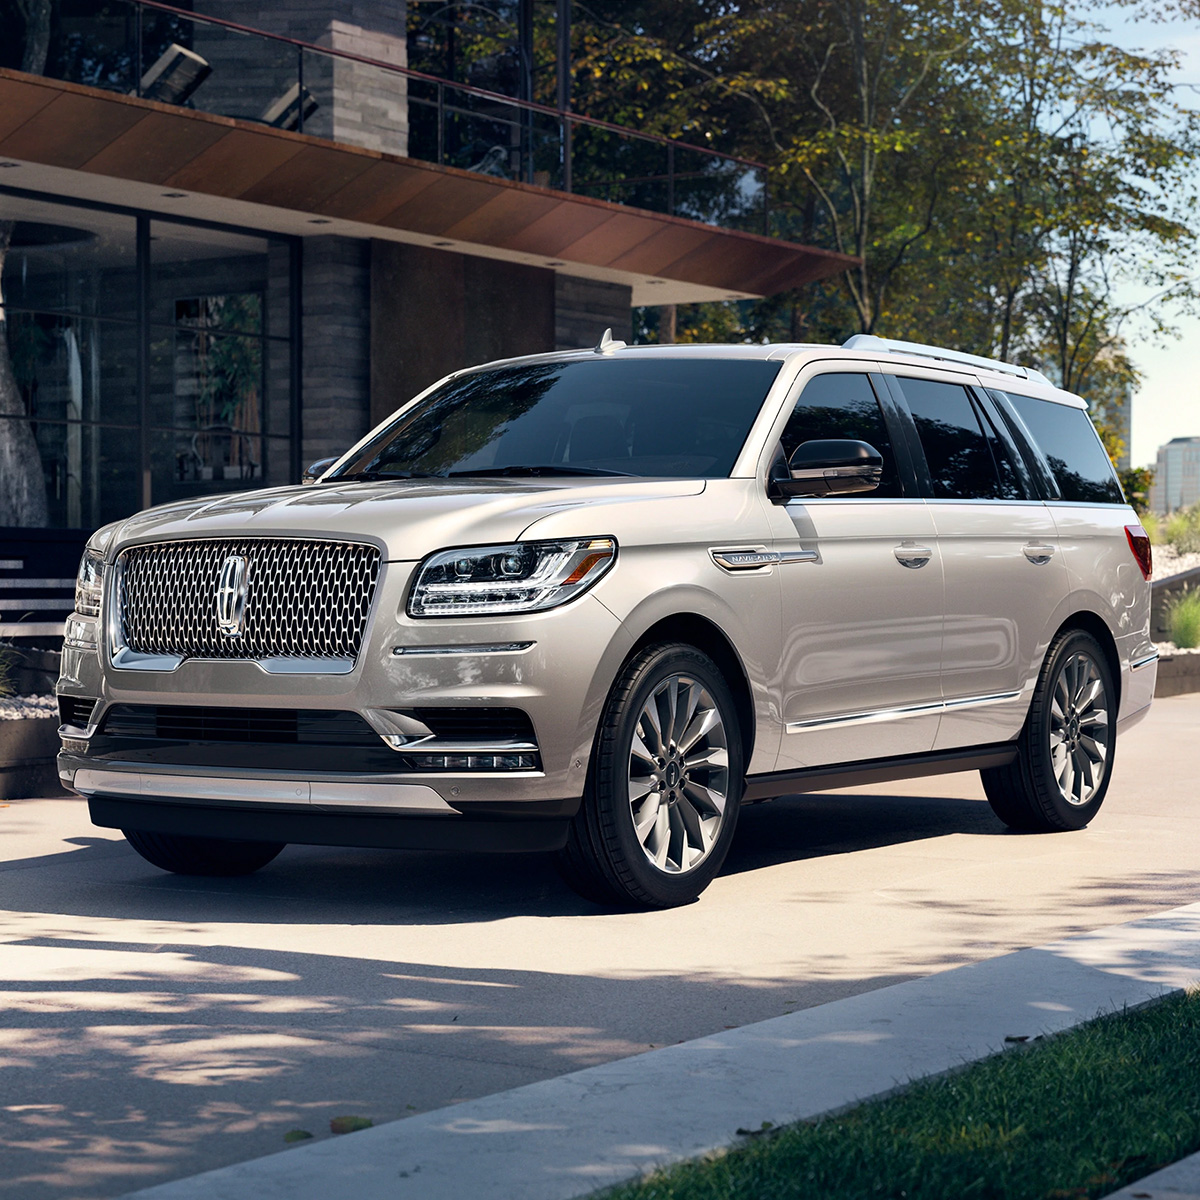 2021 Lincoln Navigator in action